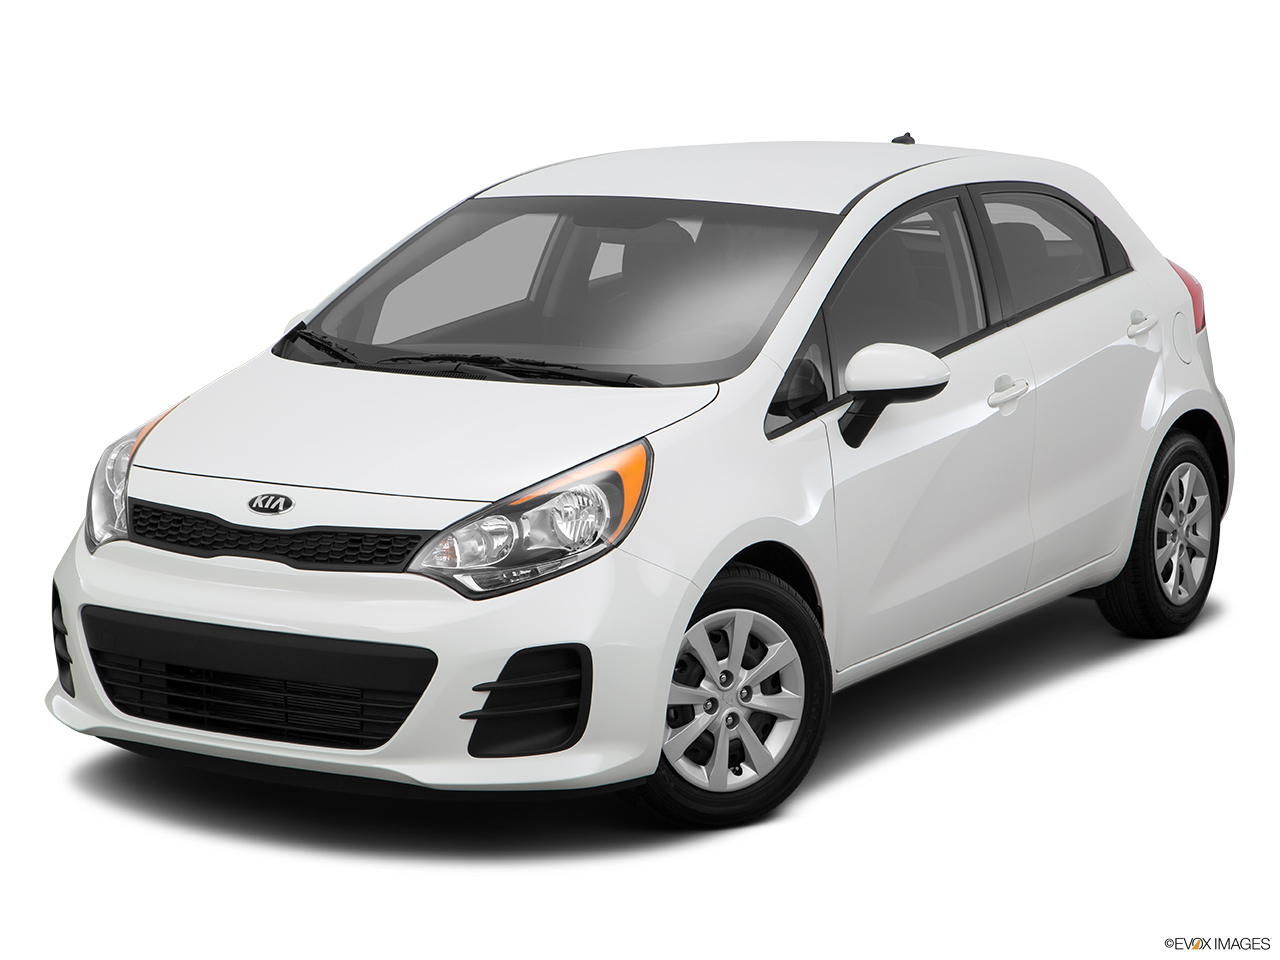 car features list for kia rio hatchback 2016 1 4 base uae yallamotor. Black Bedroom Furniture Sets. Home Design Ideas